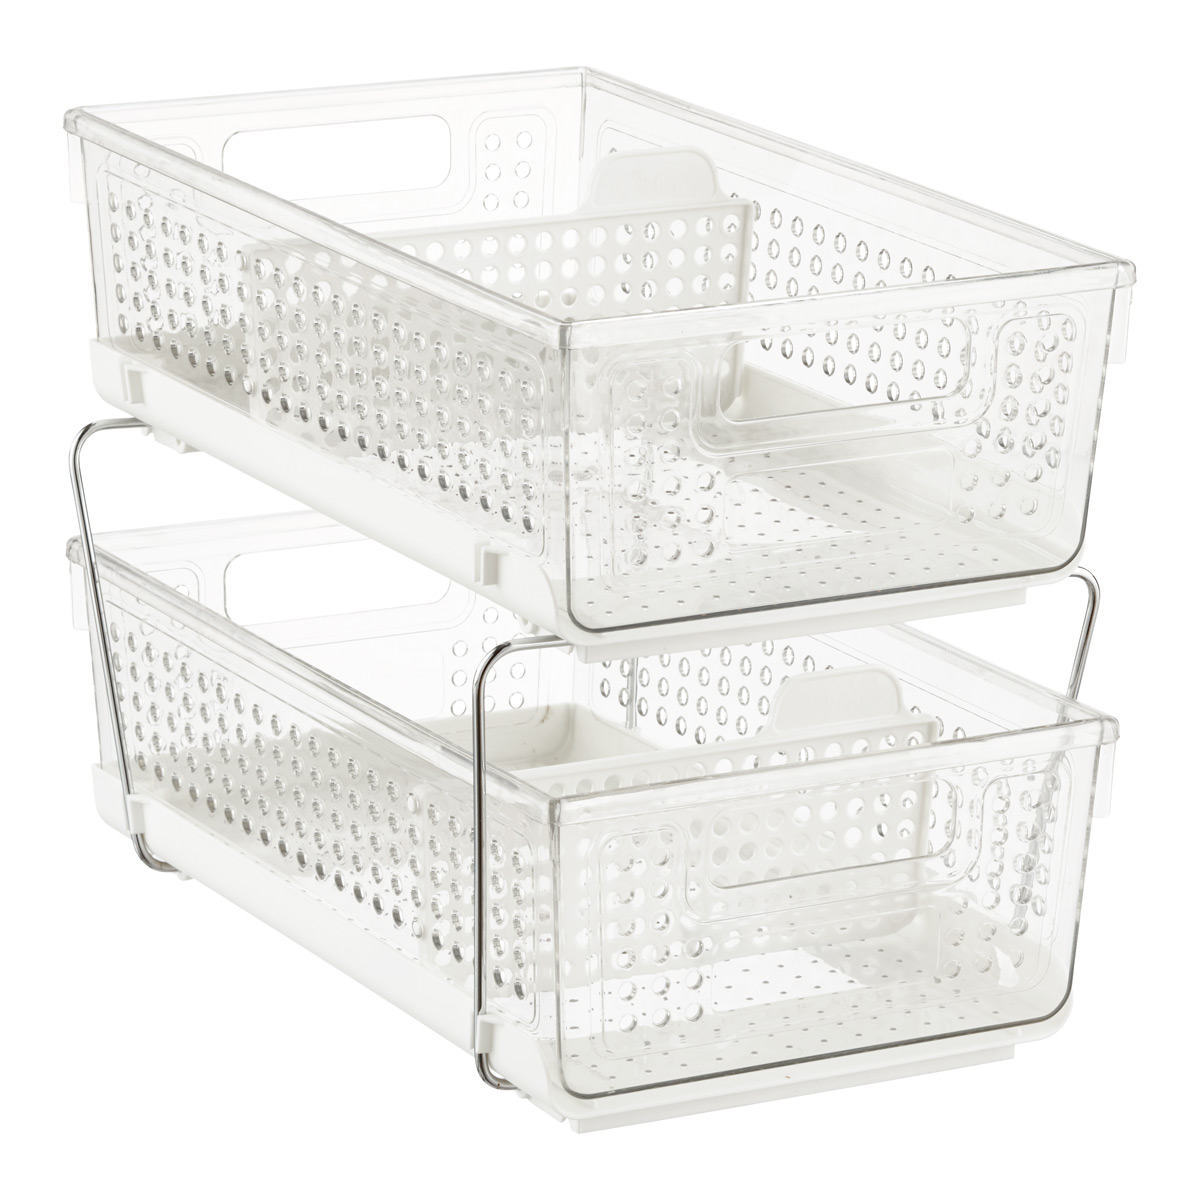 2-Tier Divided Organizer